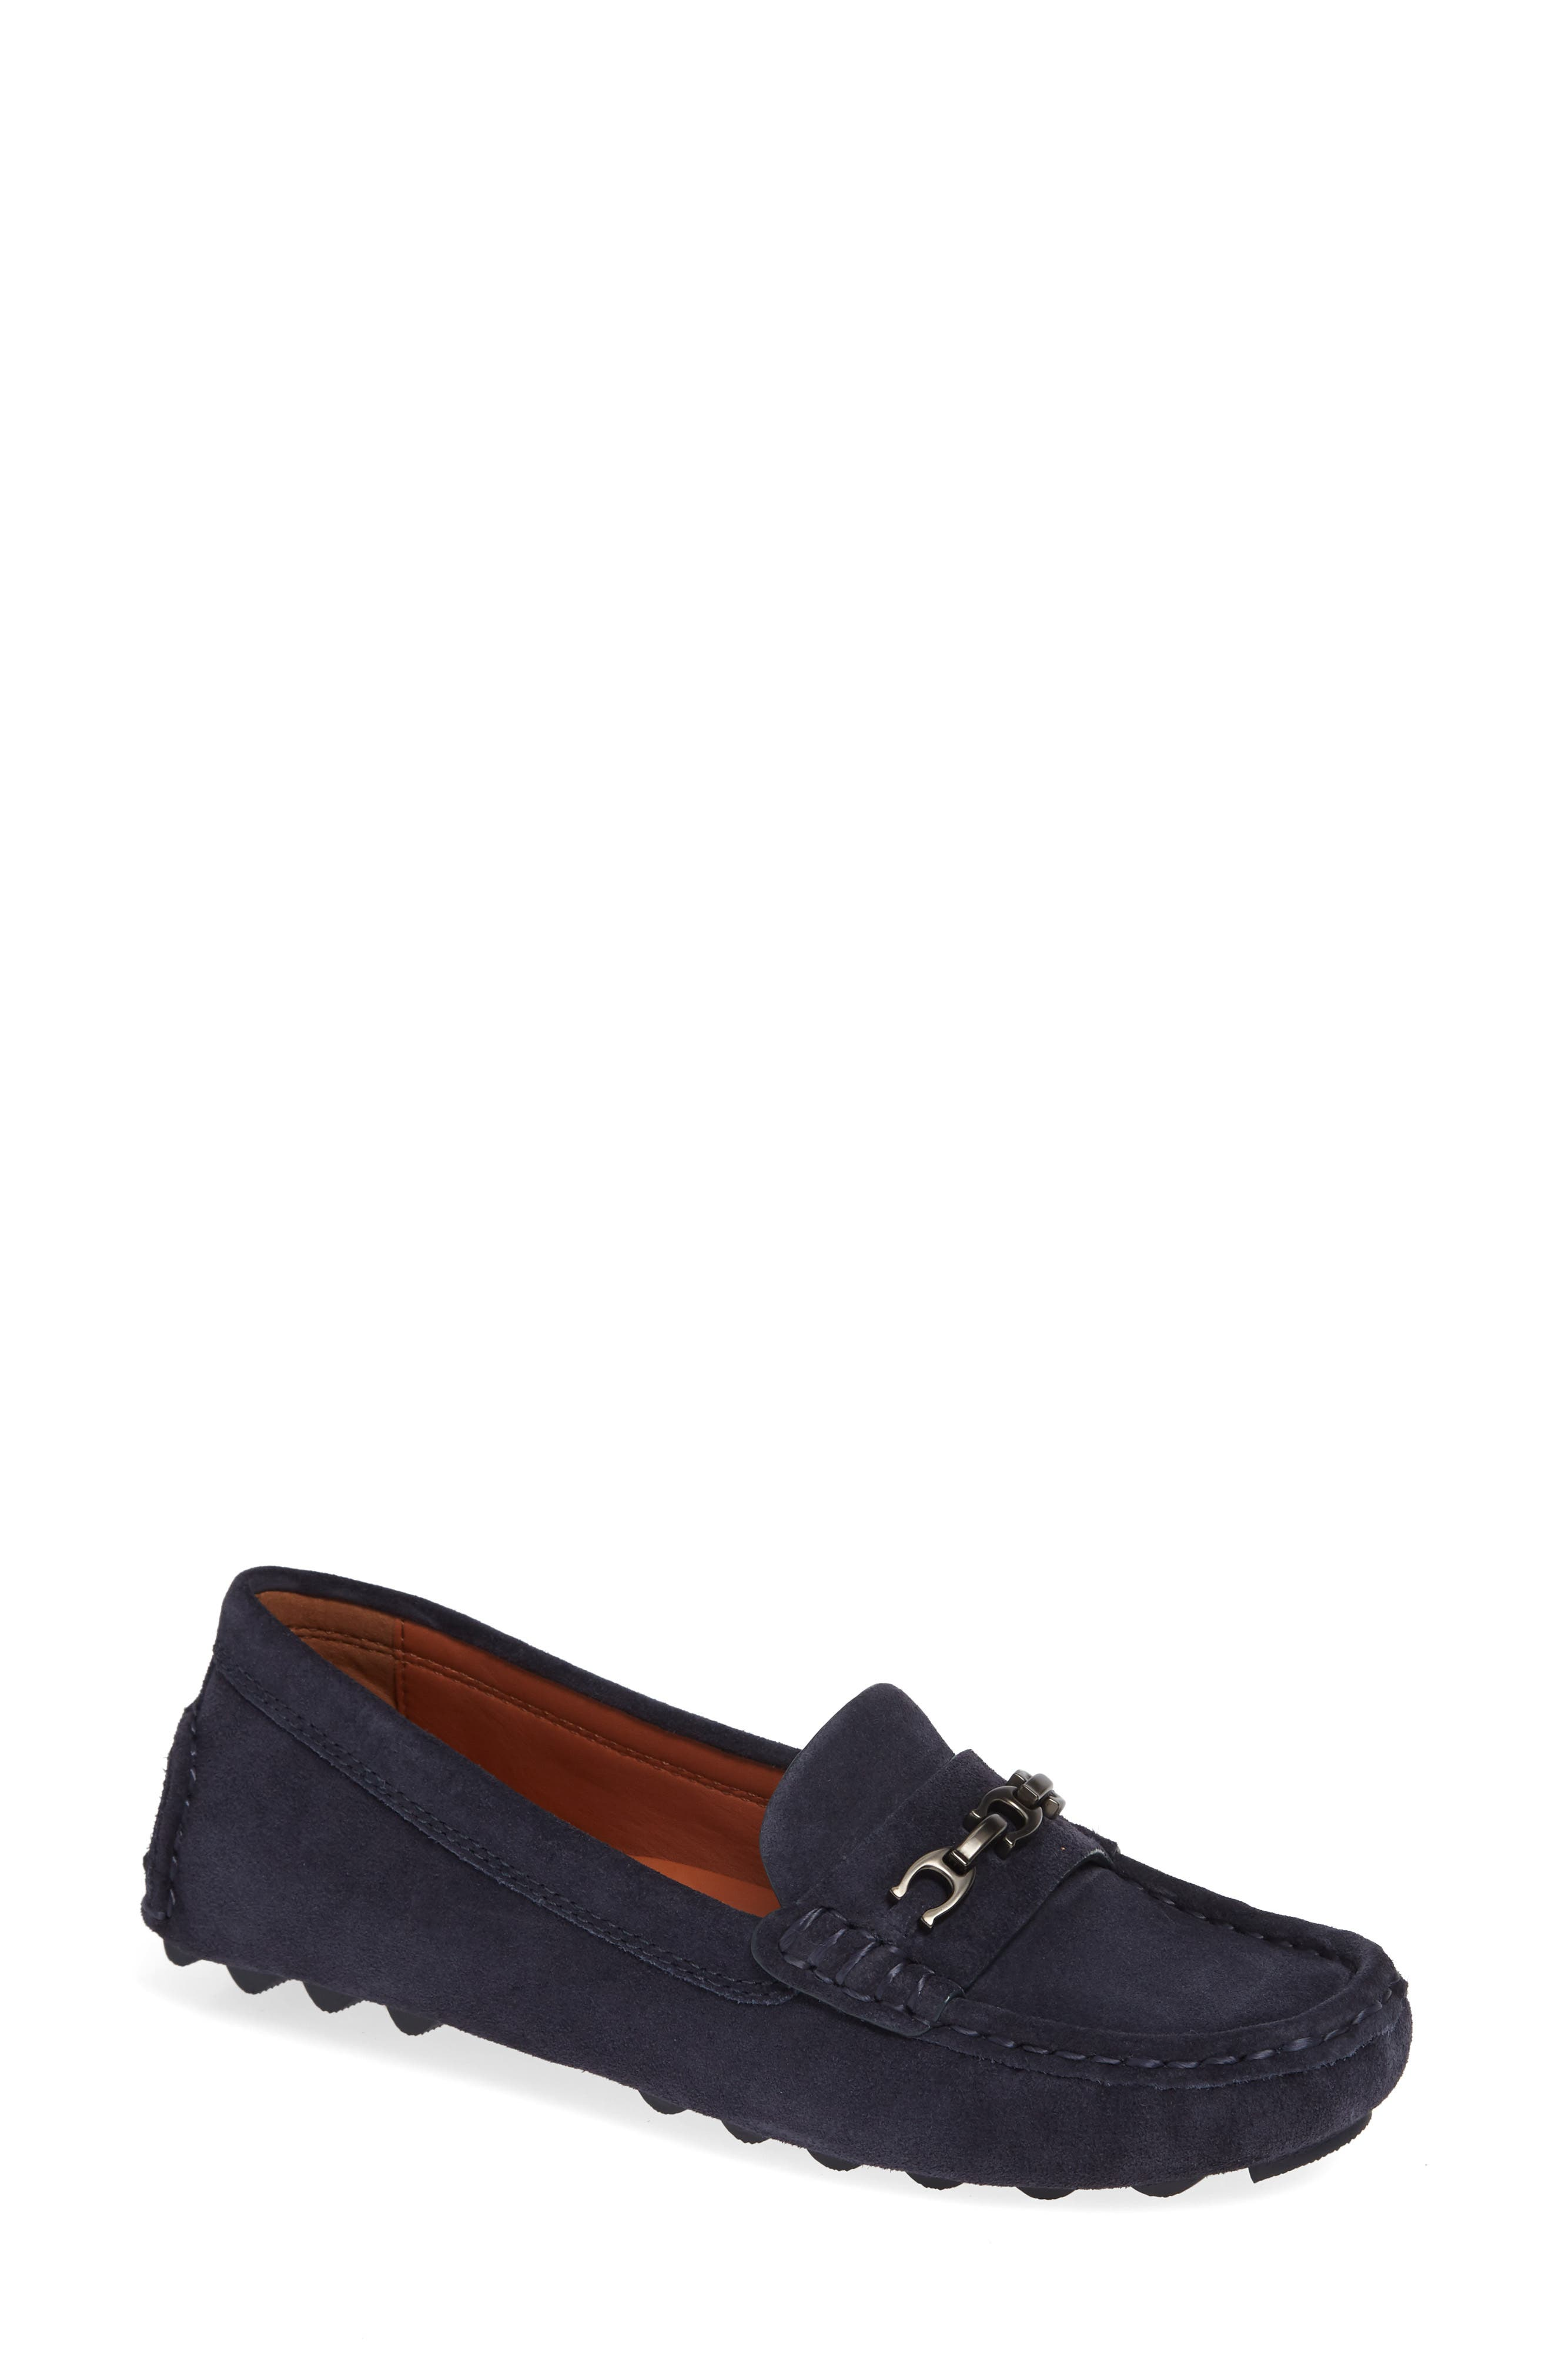 Crosby Driver Loafer,                         Main,                         color, MIDNIGHT NAVY SUEDE